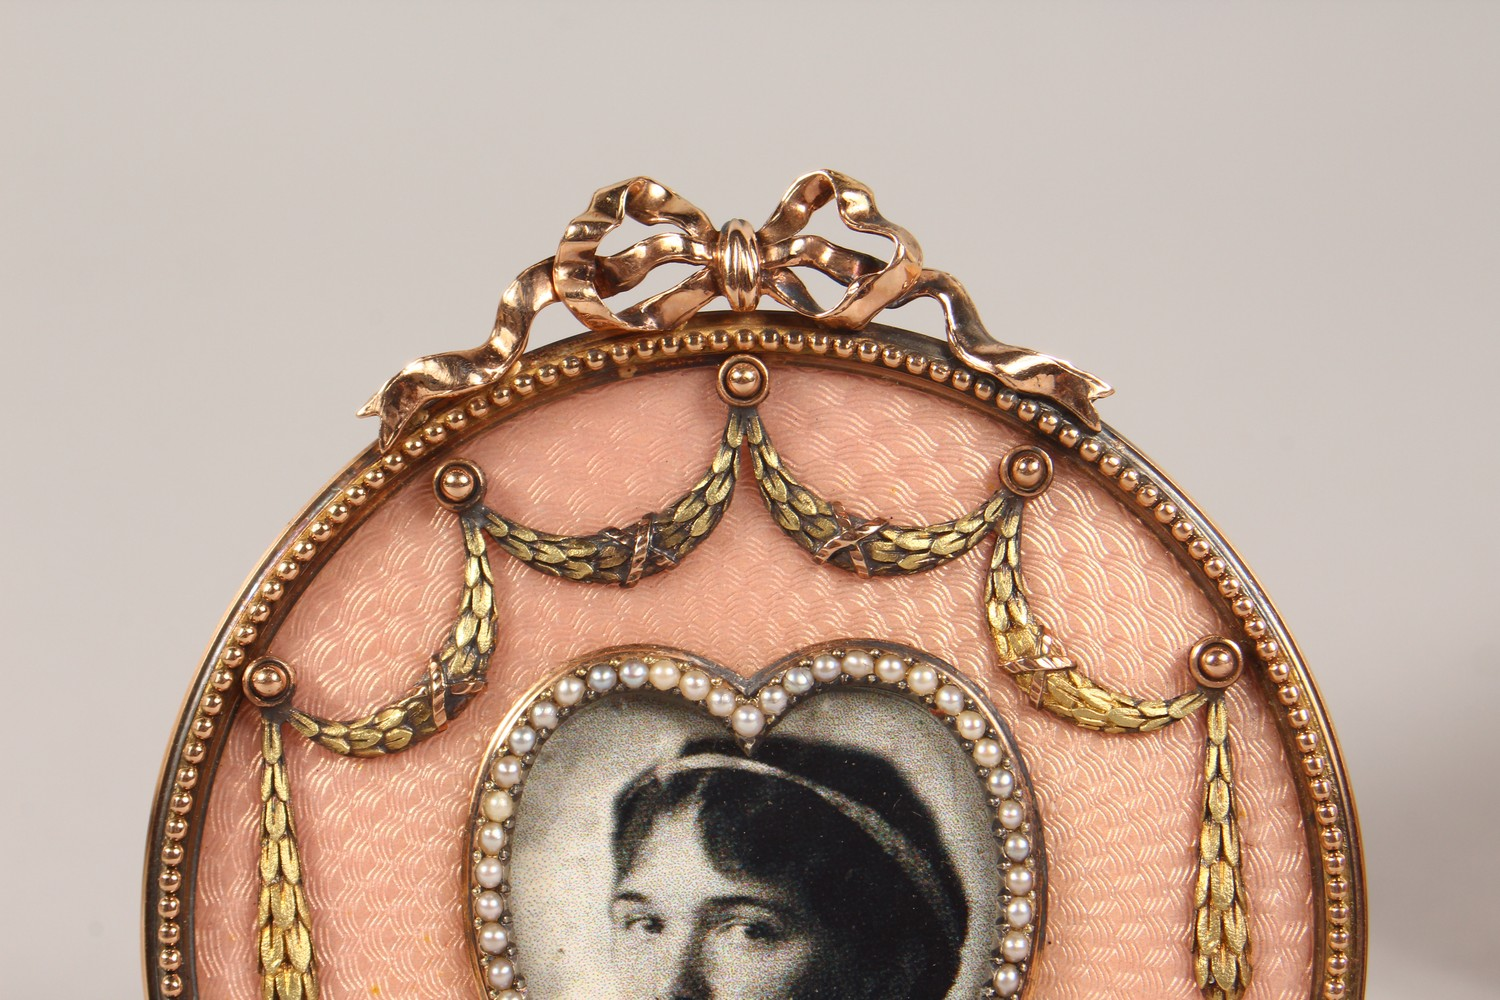 Lot 1673 - A VERY GOOD GOLD AND PINK GUILLOCHE ENAMEL SMALL CIRCULAR PHOTOGRAPH FRAME, with heart shape